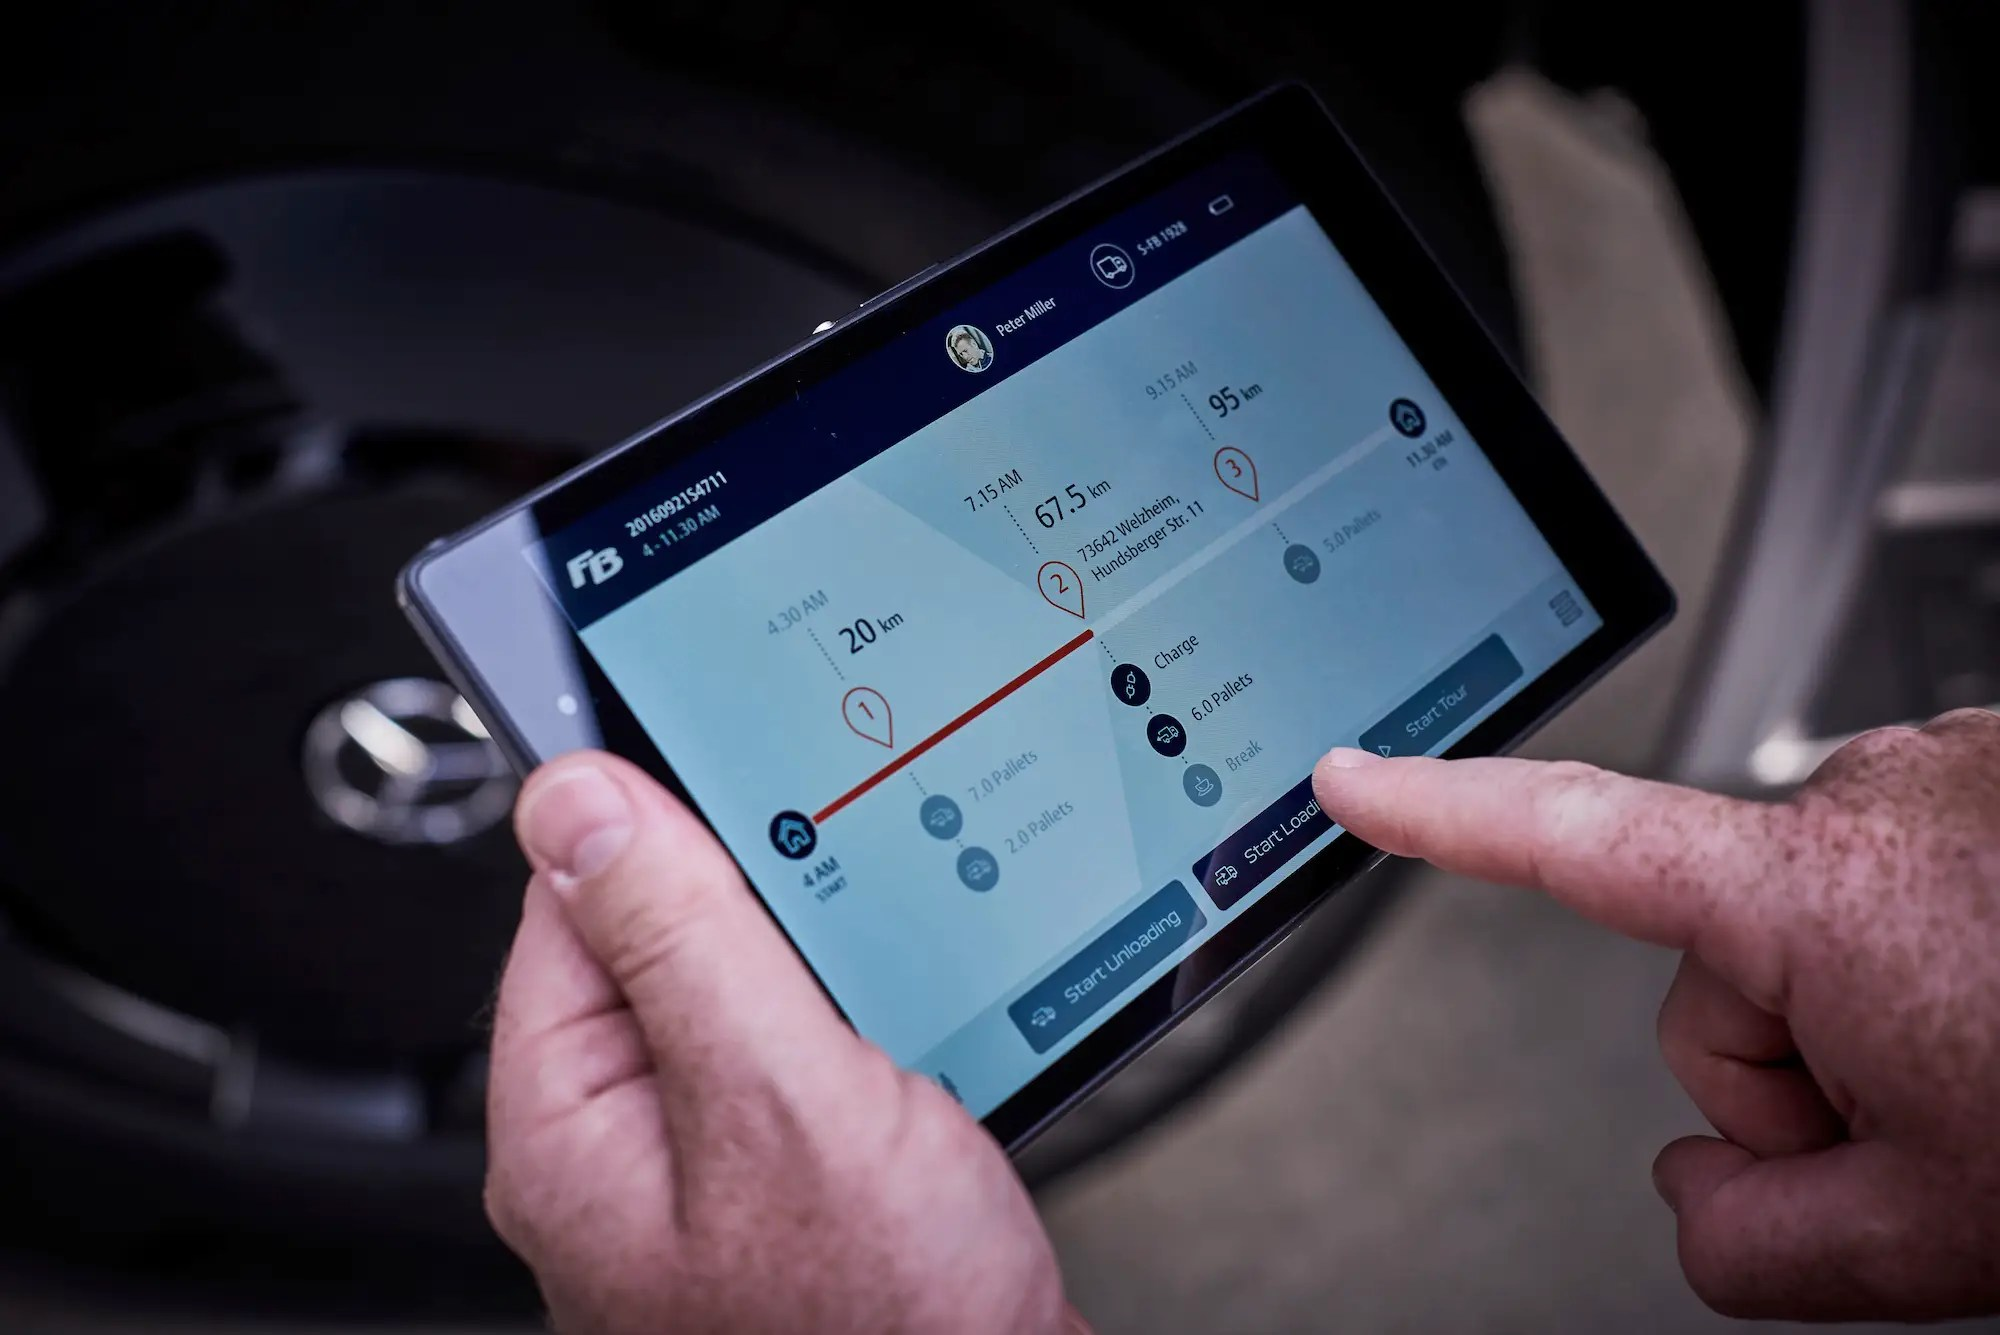 The truck also comes with a separate tablet that keeps track of the truck's battery life and how many miles it can travel before needing to re-charge.